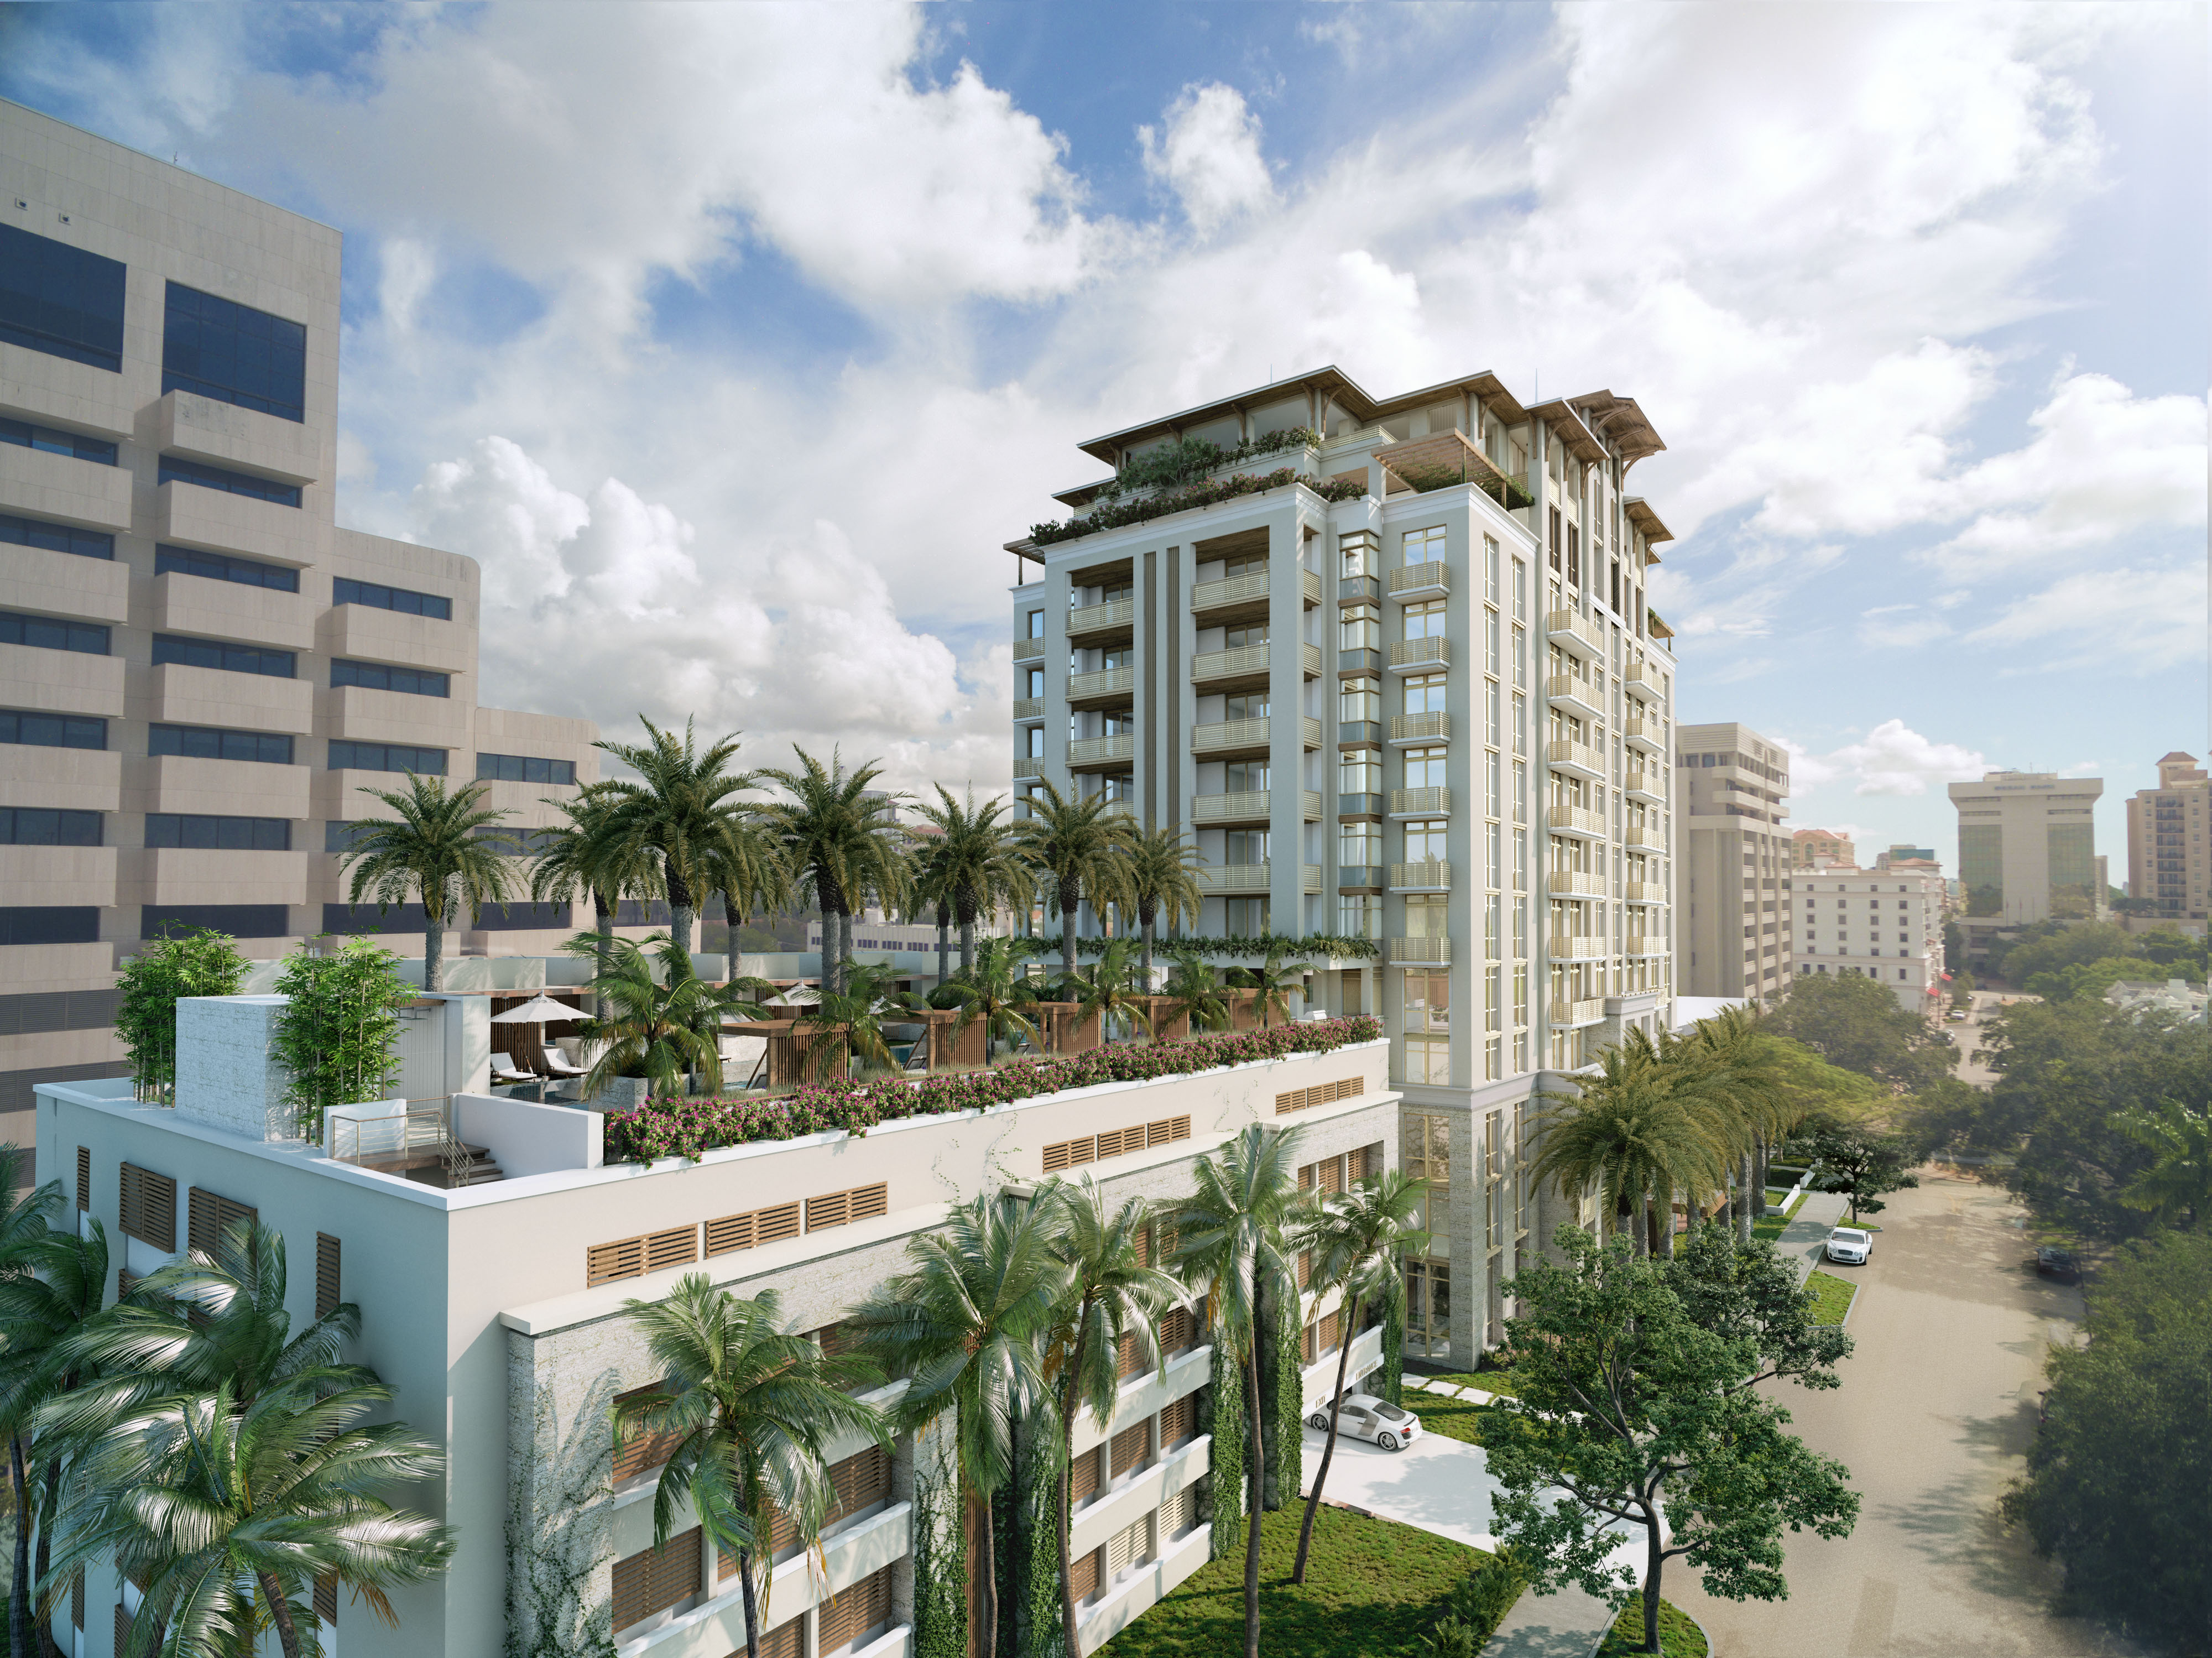 Computer graphic of a proposed high-end condo building with rooftop pool in the Miami area.